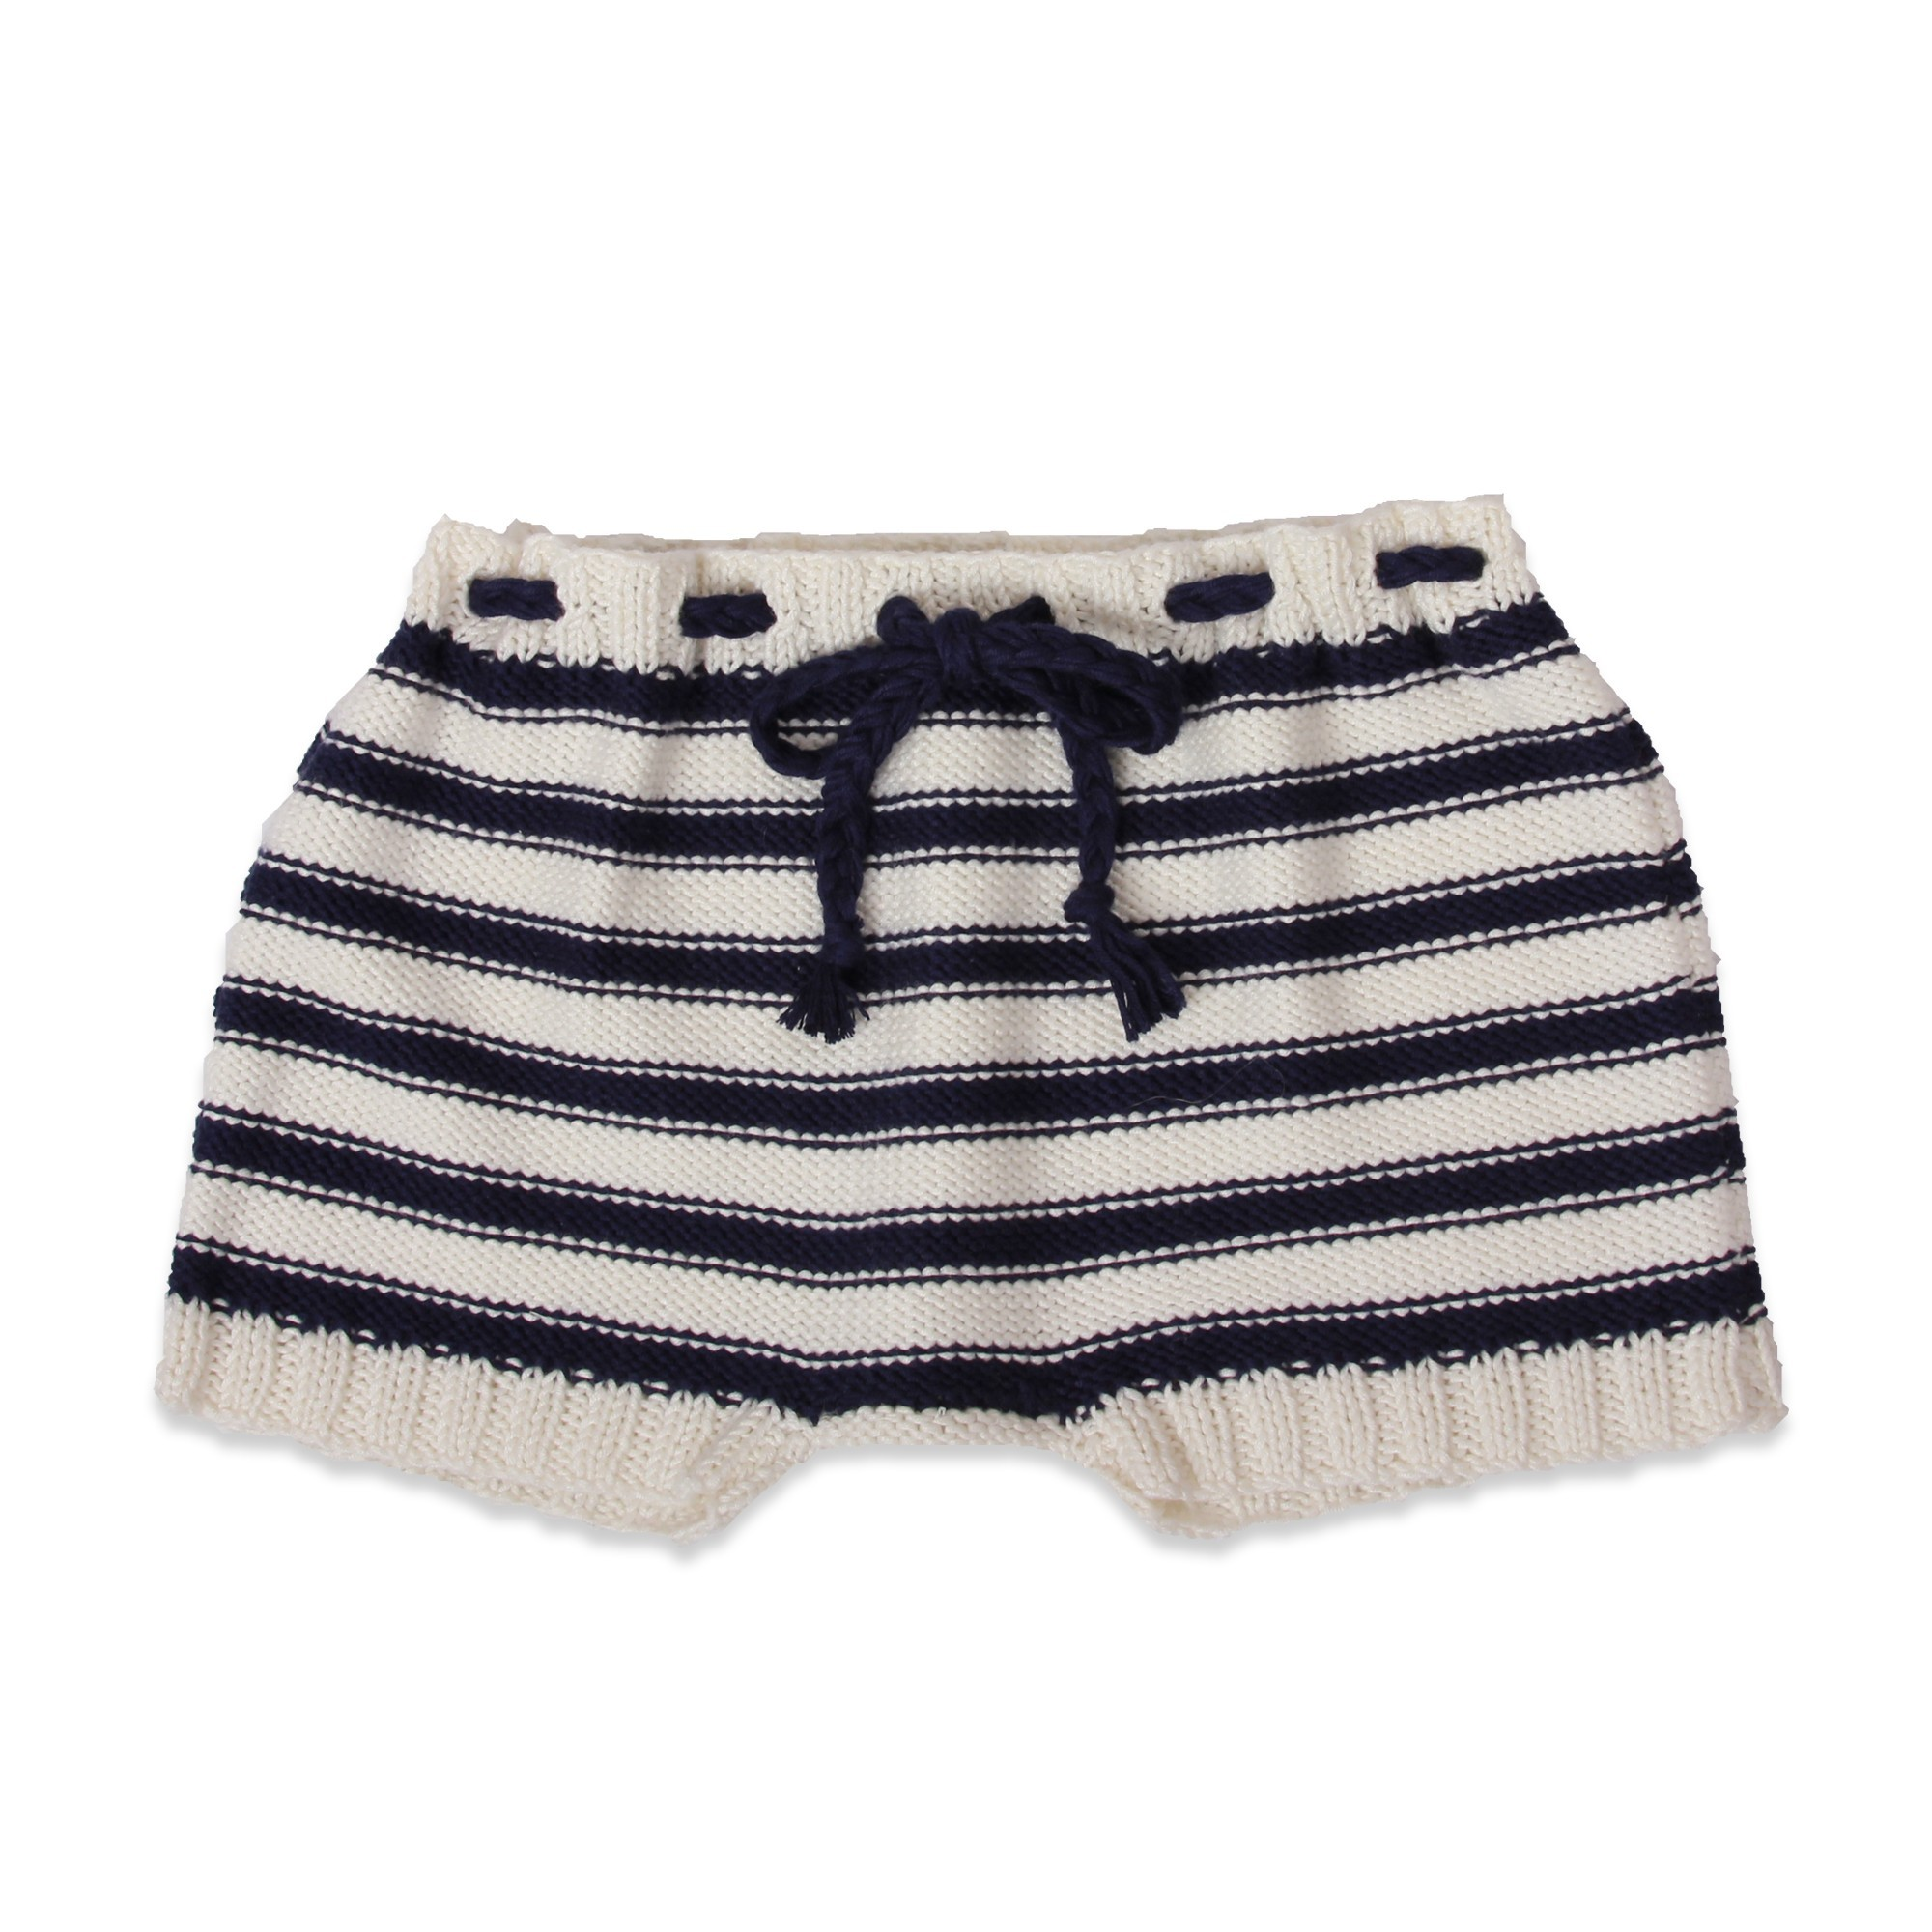 baby shorts white and navy striped for the seaside, handkknitted in cotton and bamboo yarn